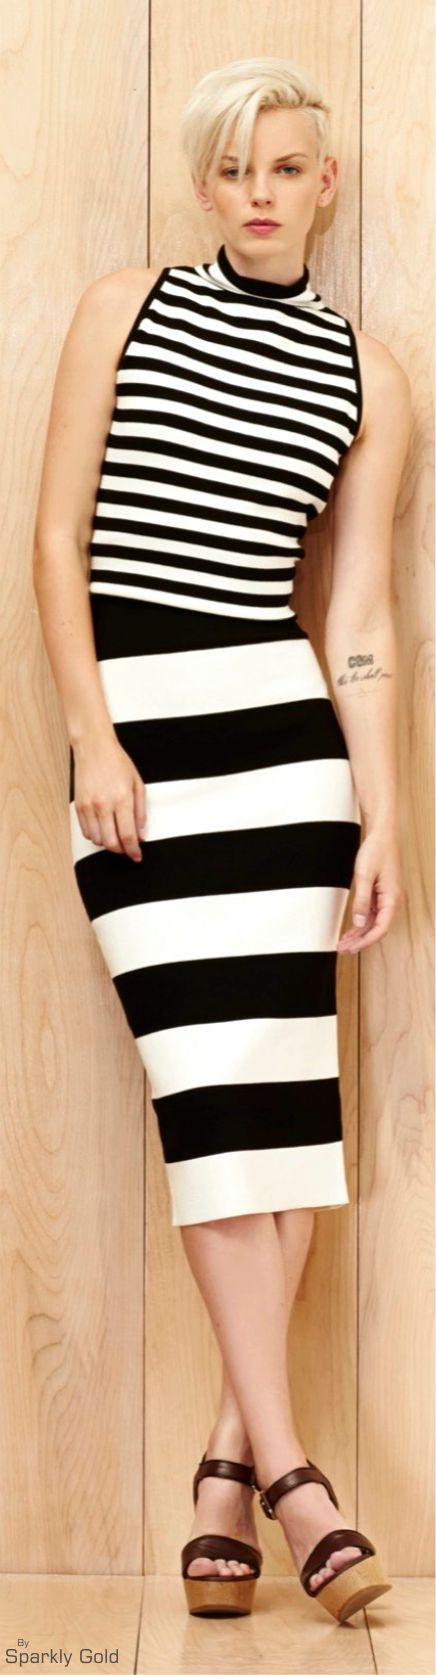 Milly Resort 2016 striped black white dress  women fashion outfit clothing stylish apparel @roressclothes closet ideas: